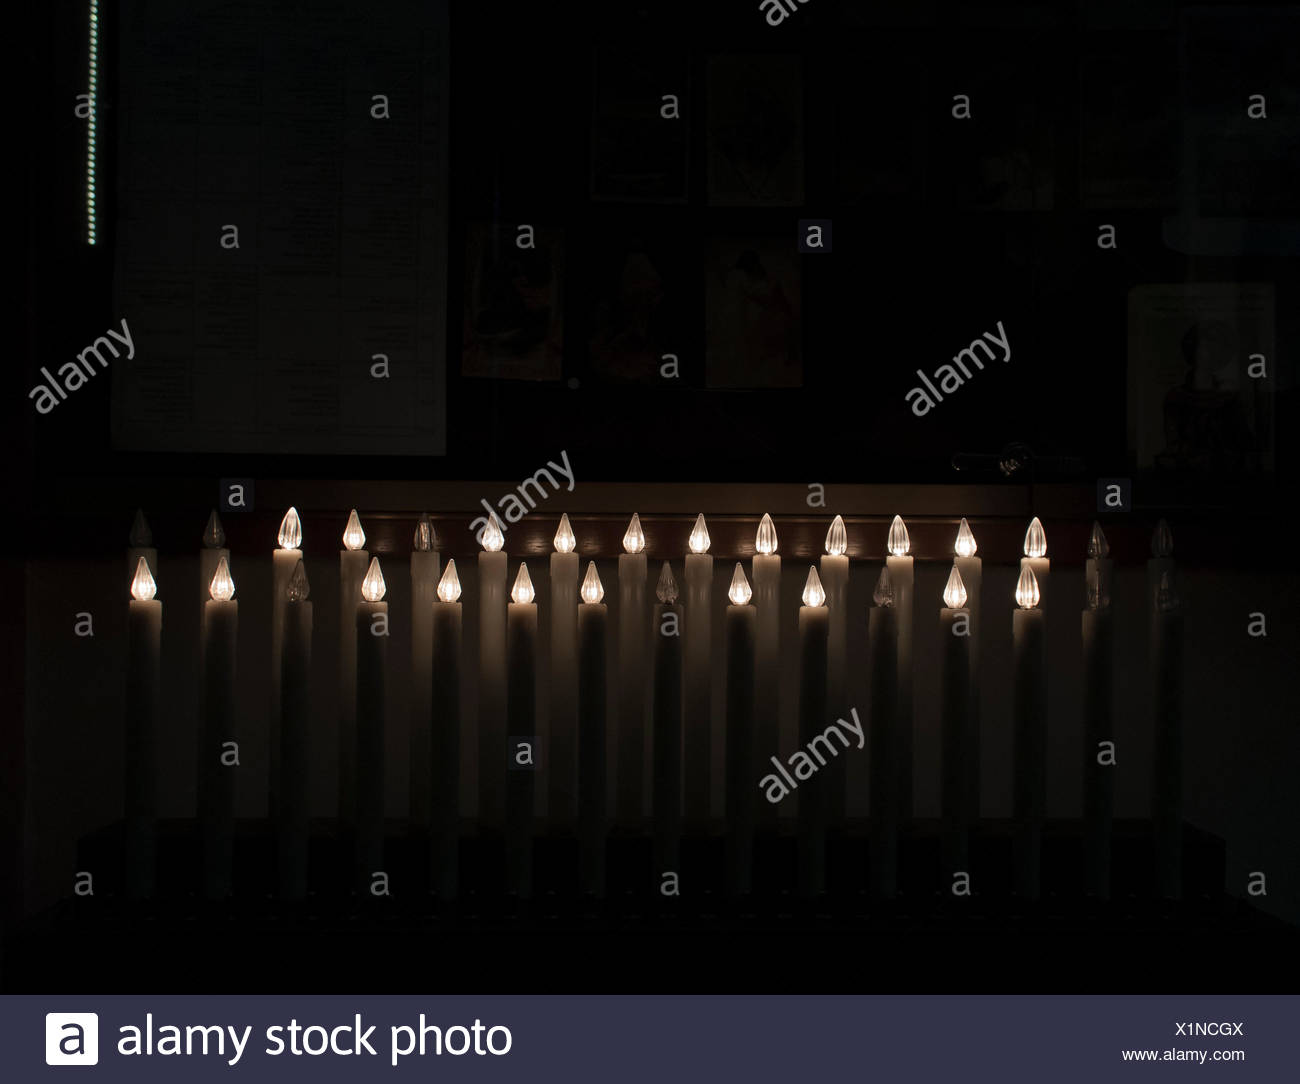 Electric Candles In Obscure Interior - Stock Image